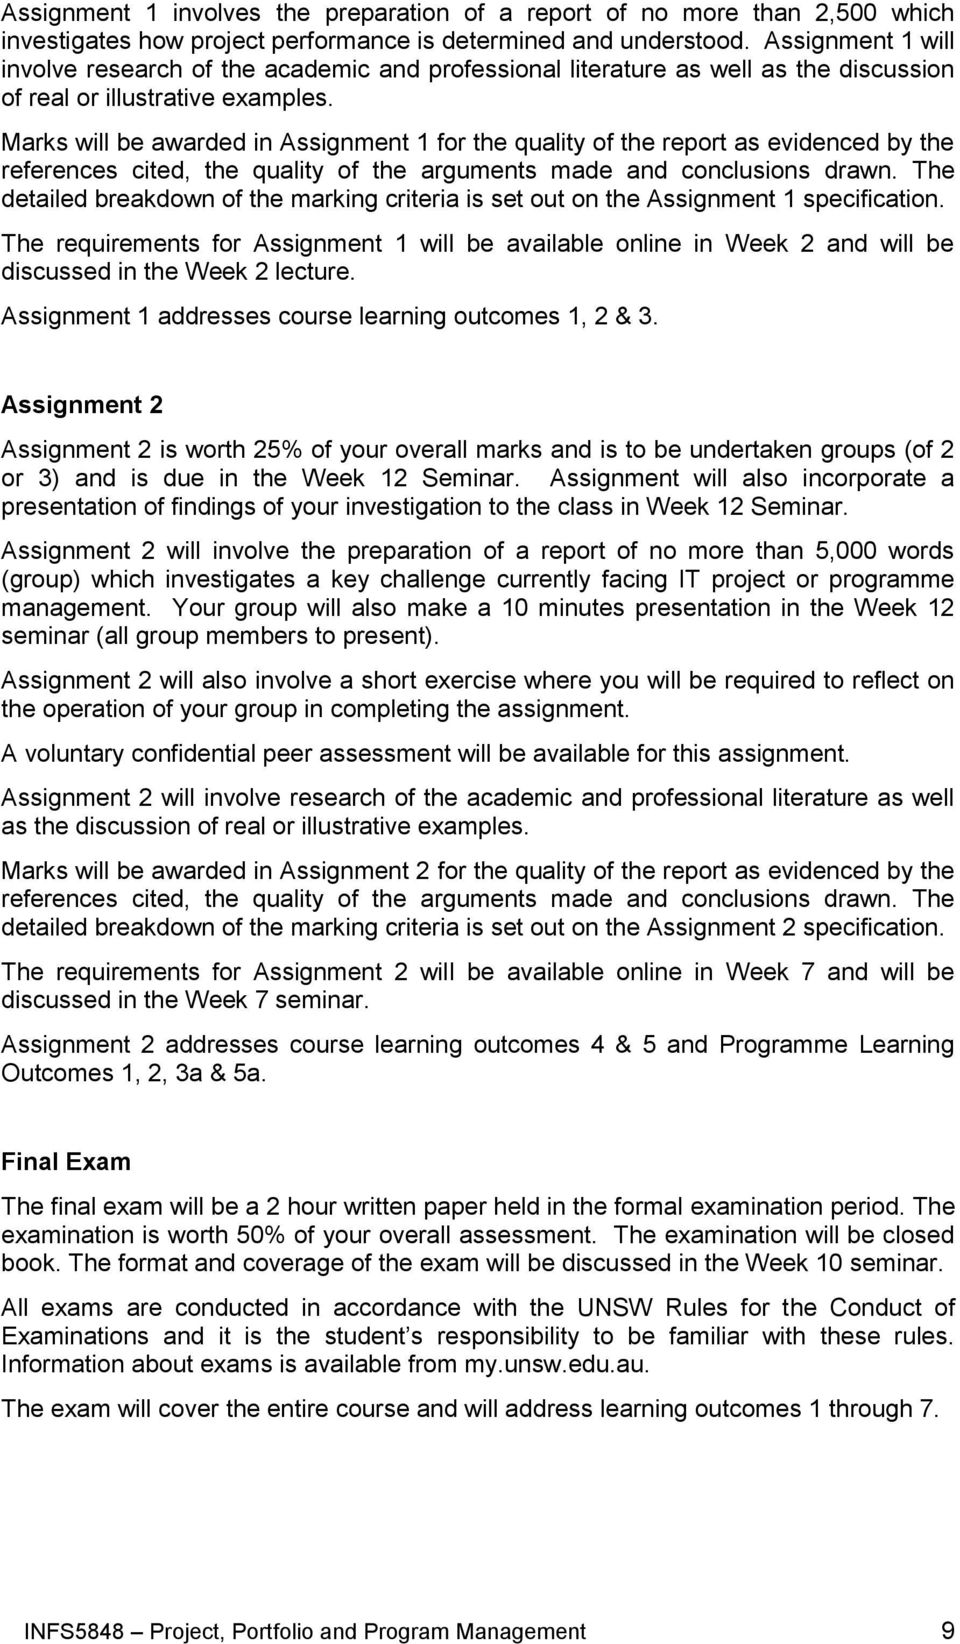 Marks will be awarded in Assignment 1 for the quality of the report as evidenced by the references cited, the quality of the arguments made and conclusions drawn.